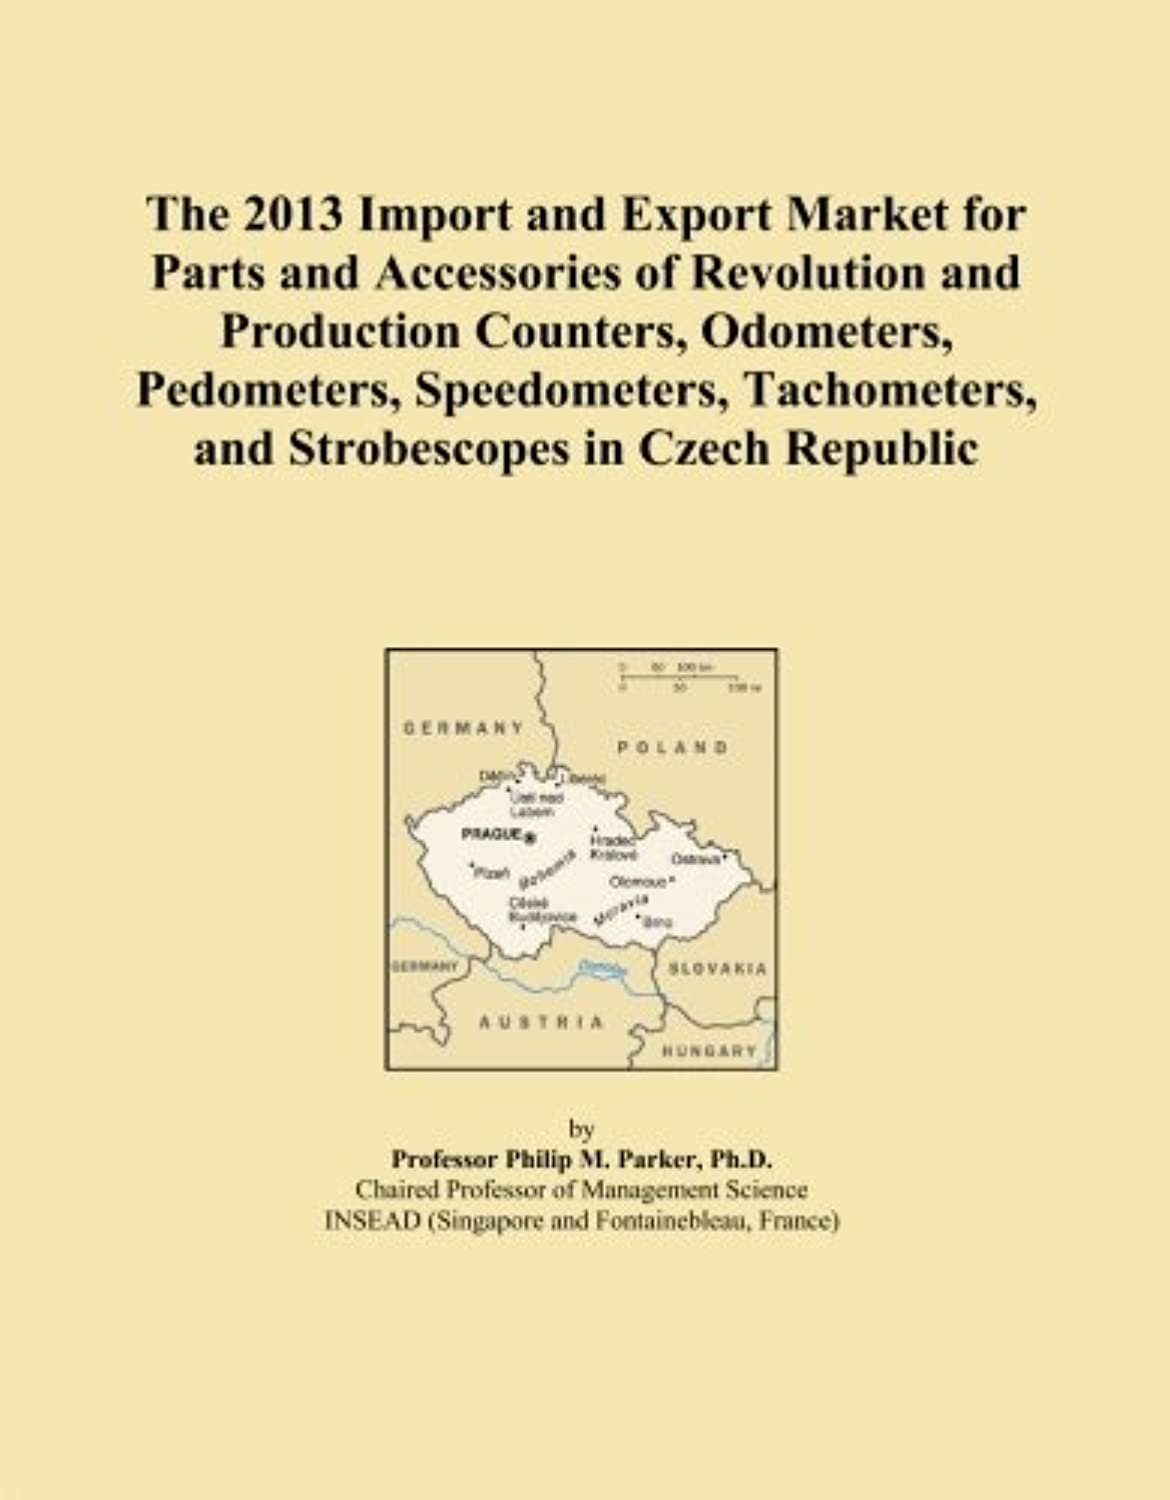 The 2013 Import and Export Market for Parts and Accessories of Revolution and Production Counters, Odometers, Pedometers, Speedometers, Tachometers, and Strobescopes in Czech Republic